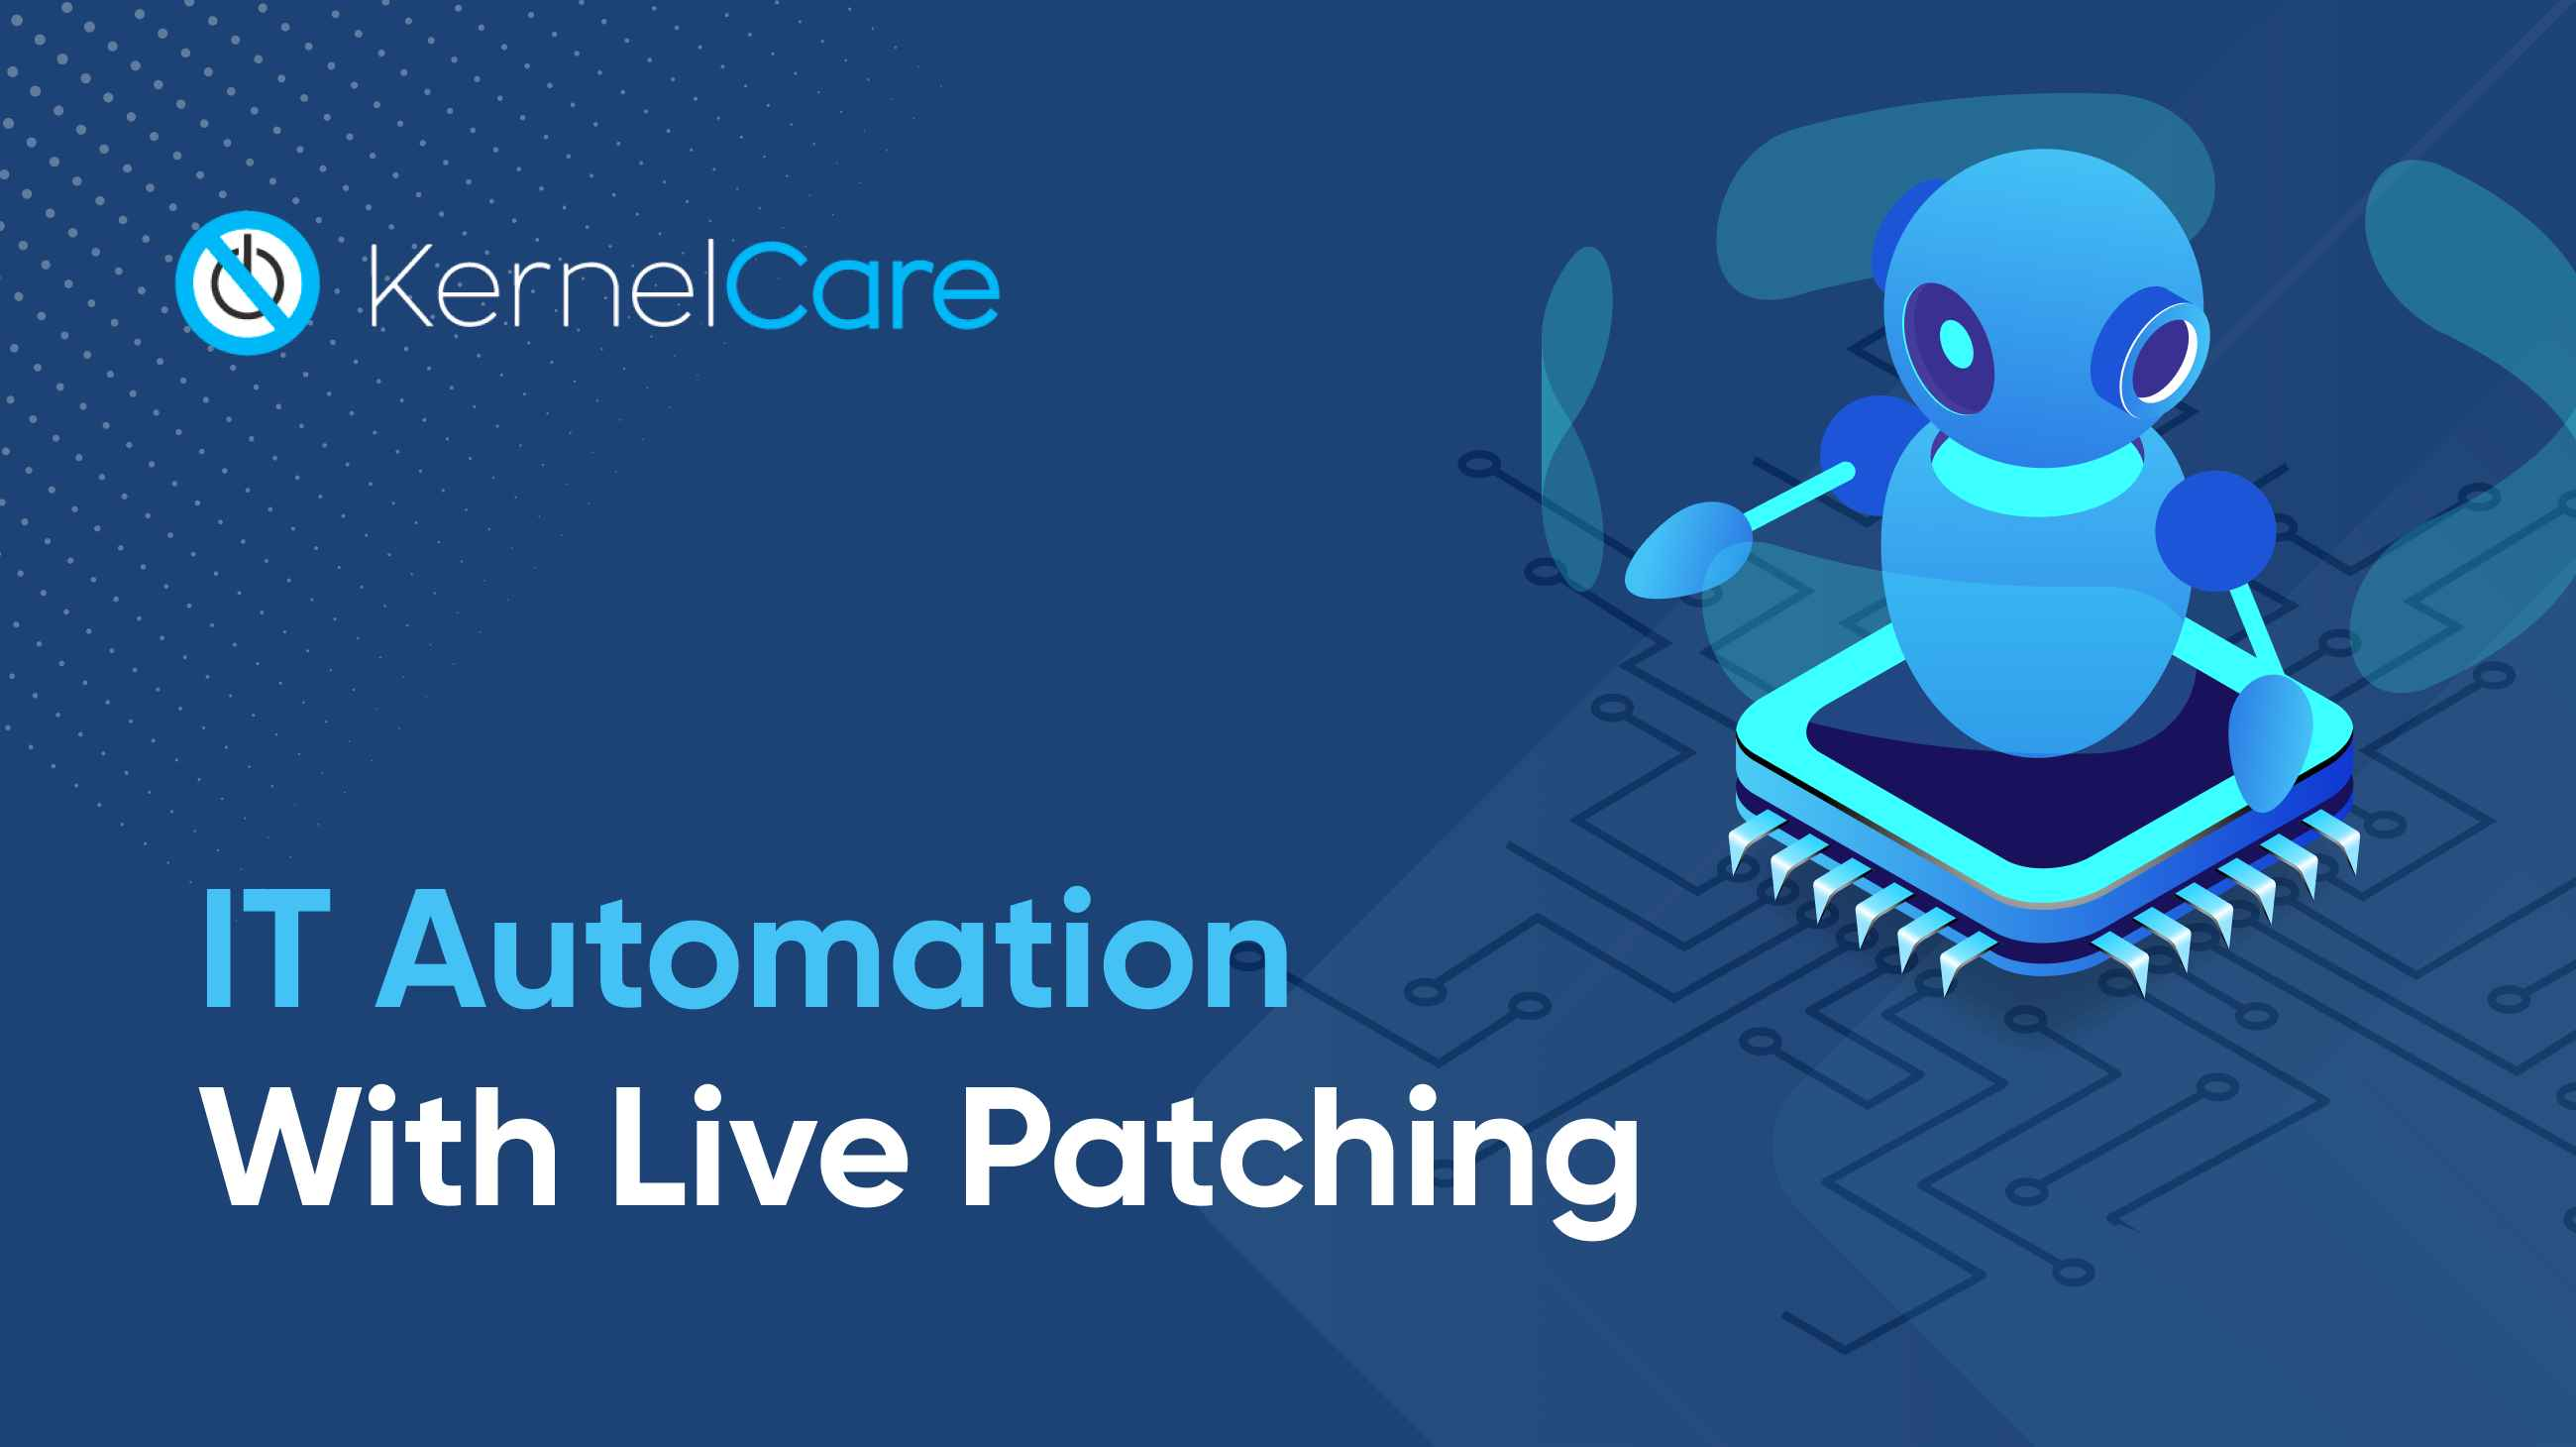 IT Automation With Live Patching